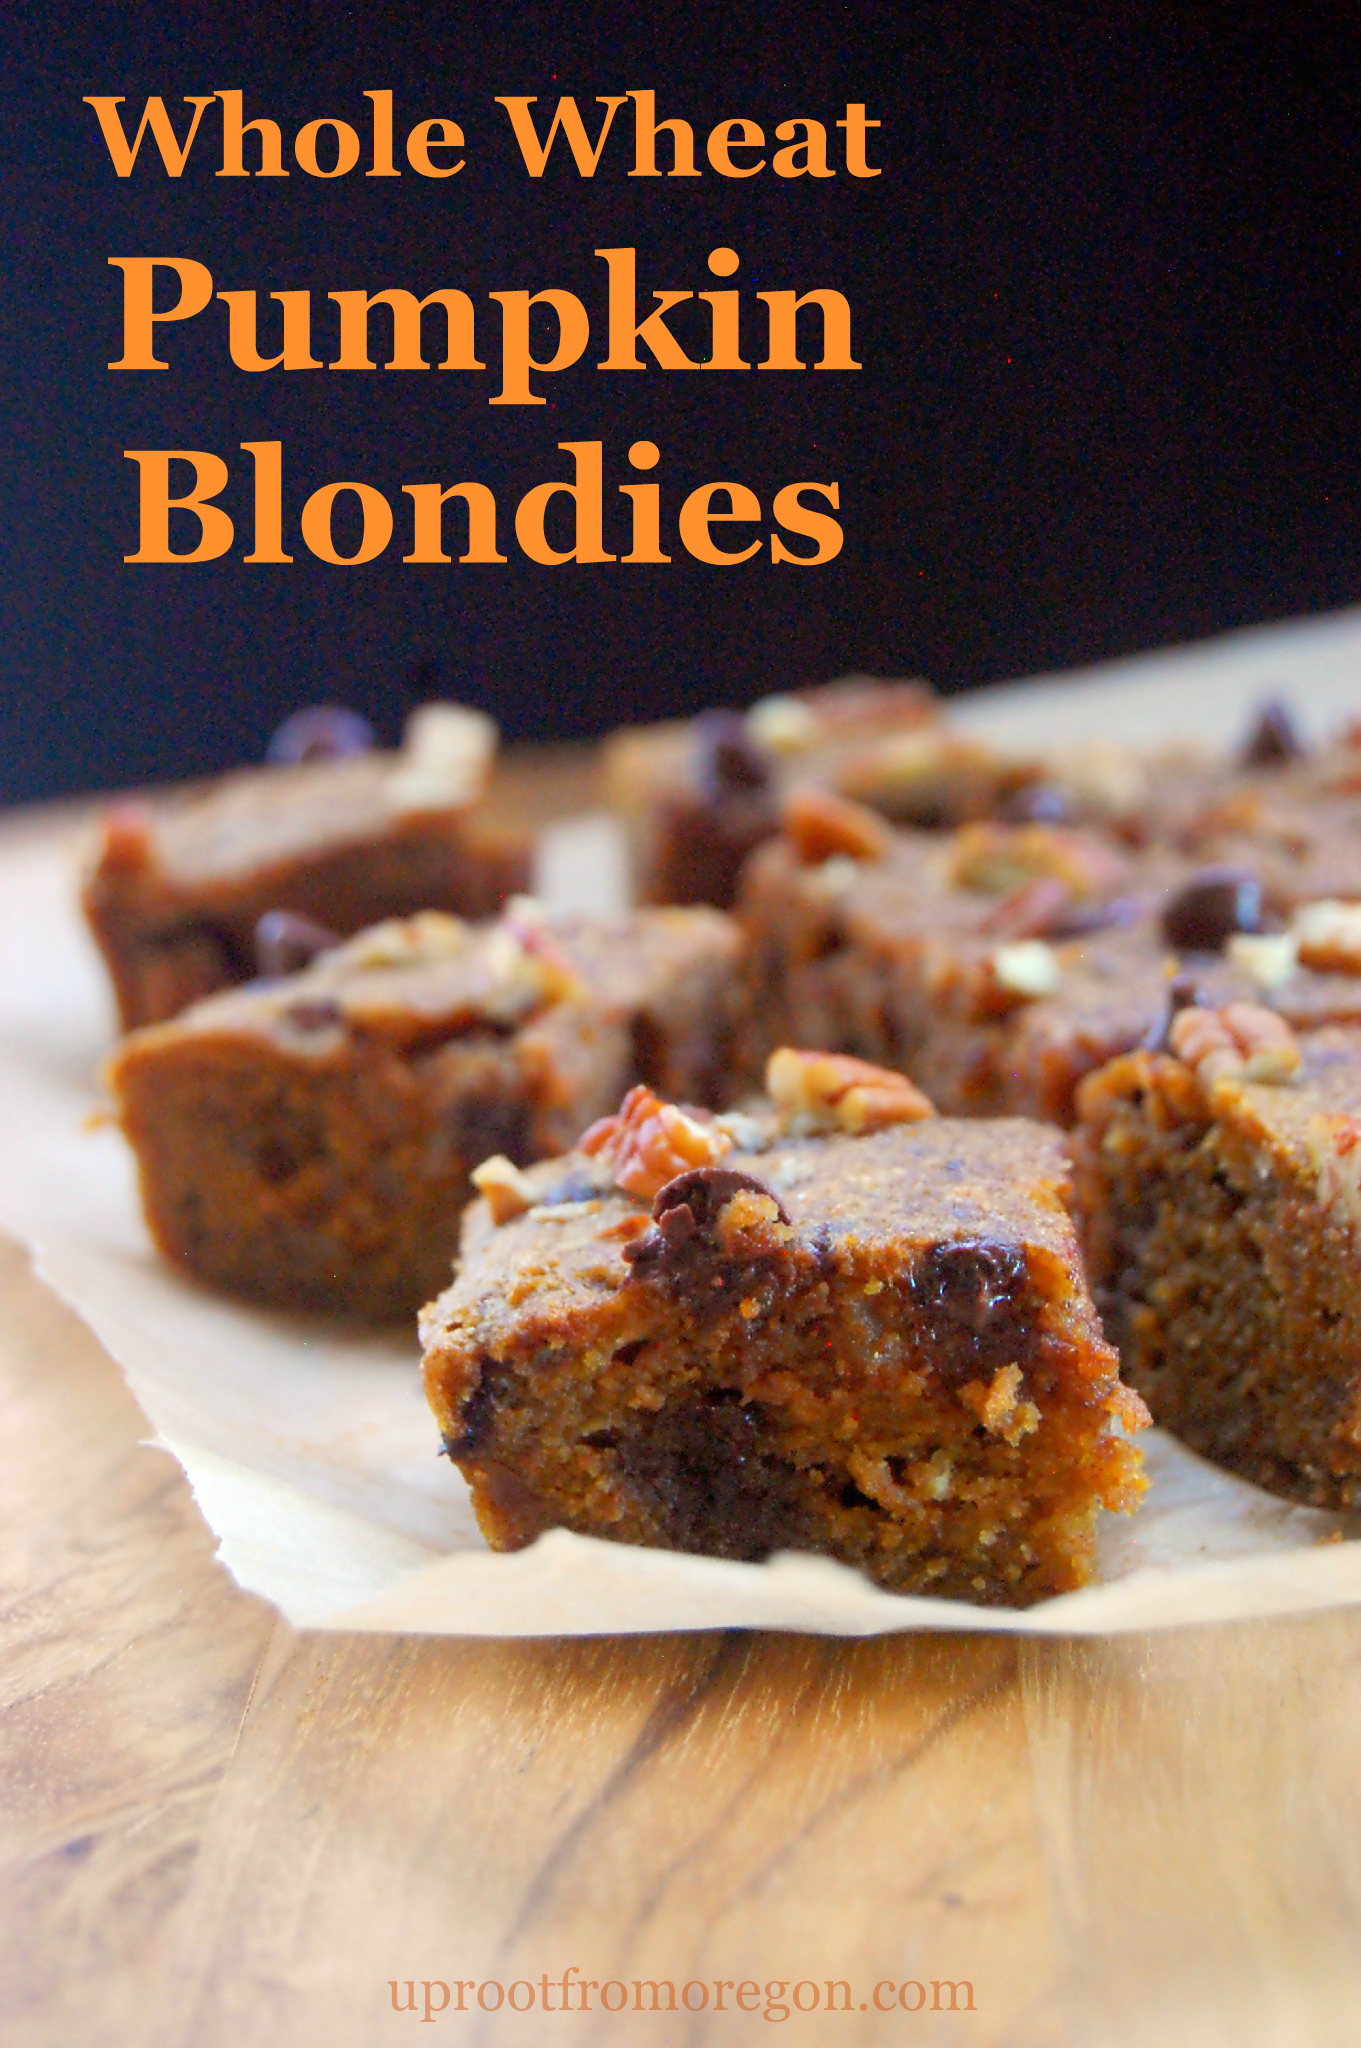 A simple fall dessert recipe for Whole Wheat Pumpkin Blondies with Pecans and Chocolate Chips | uprootfromoregon.com